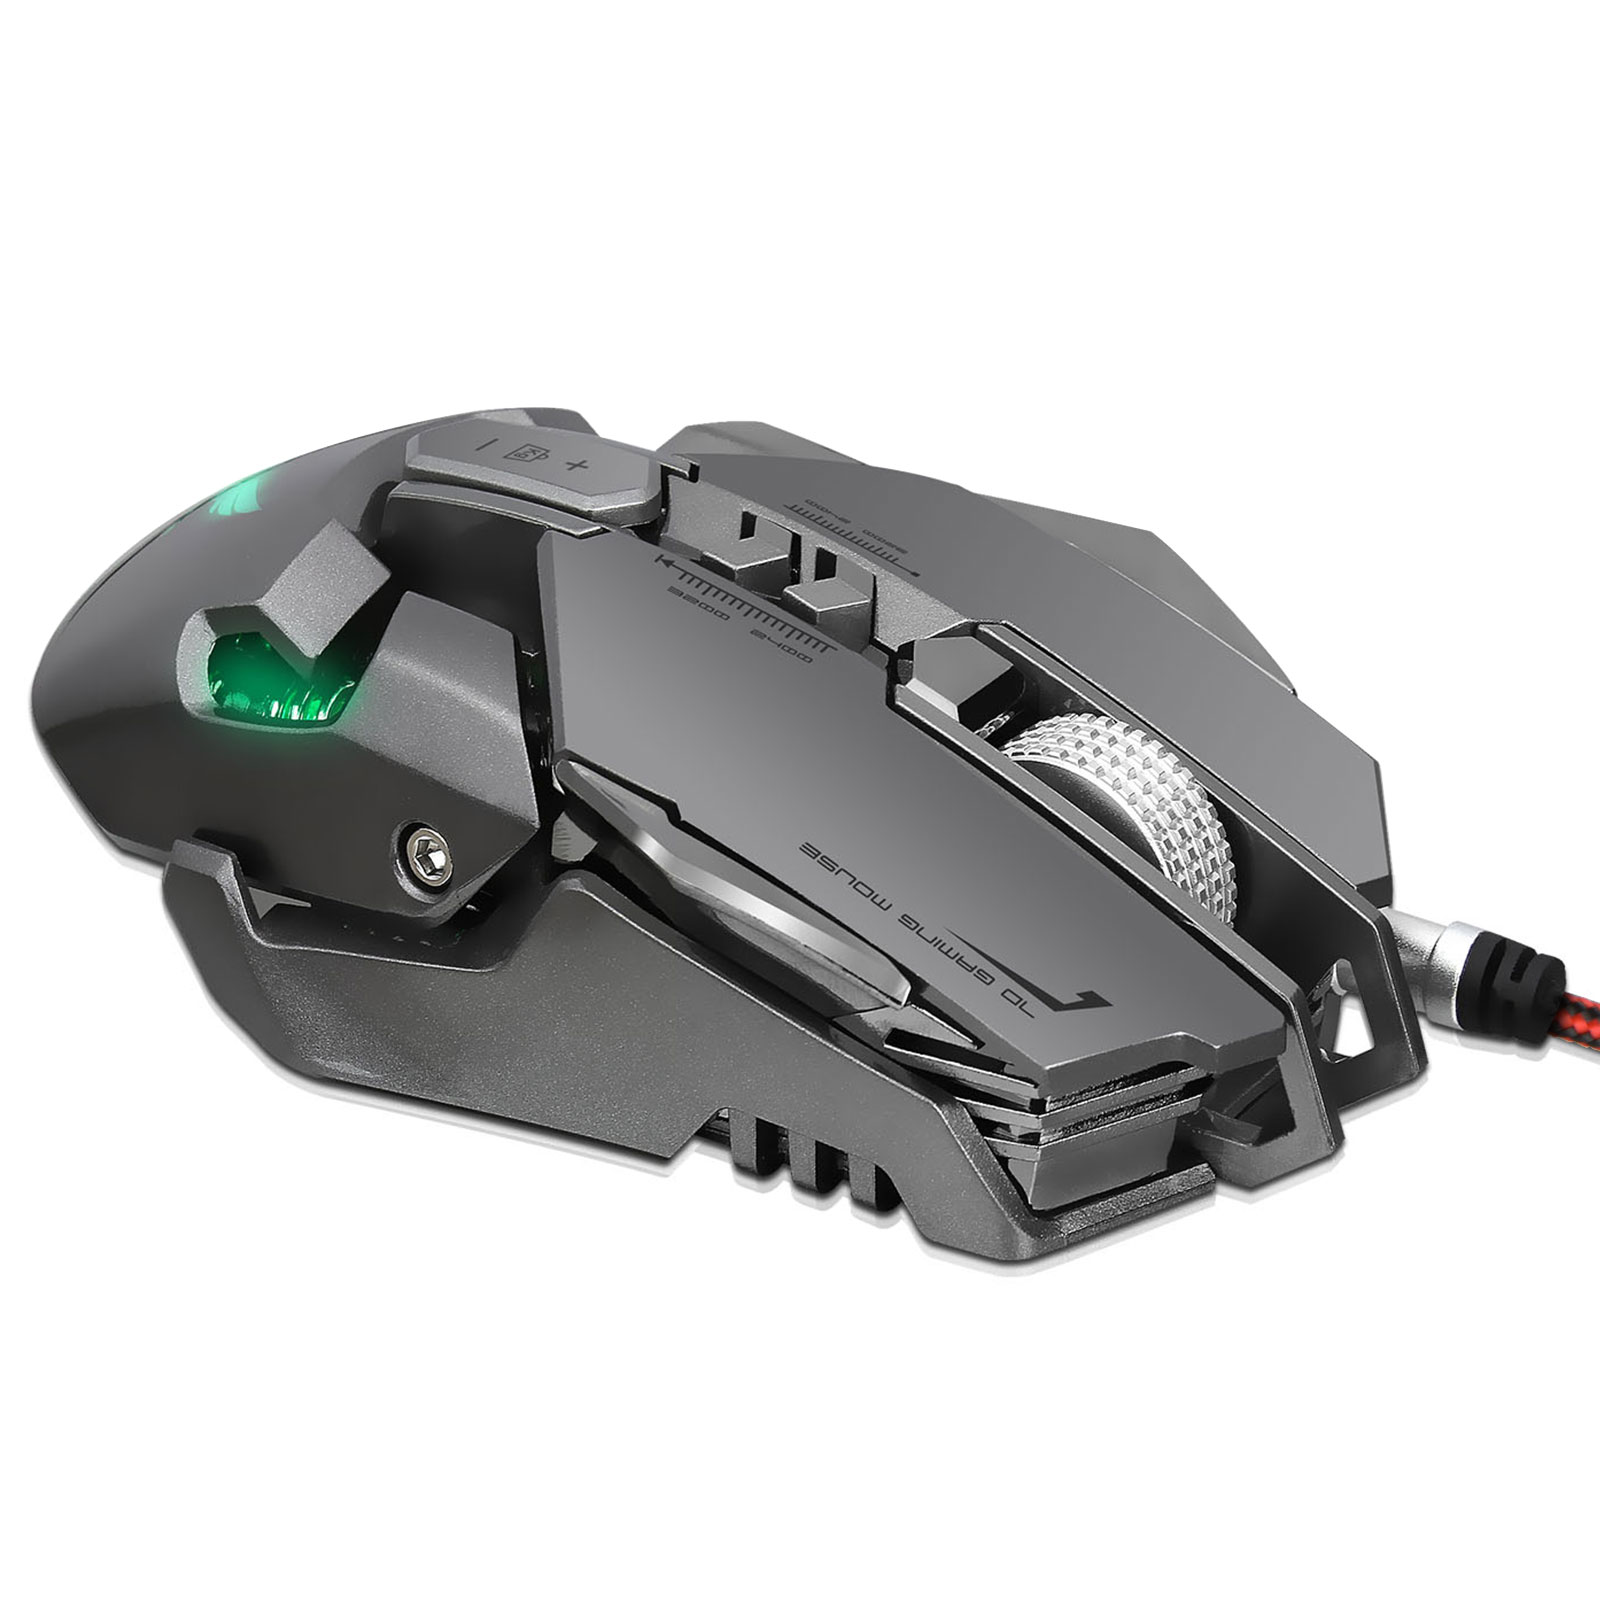 EEEKit Mechanical Gaming Mouse Wired, Comfortable Grip Optical Computer PC Gaming Mice, 4000 DPI, 12-Level Adjustable, ,7 Buttons, LED Variable Light Effect, Black